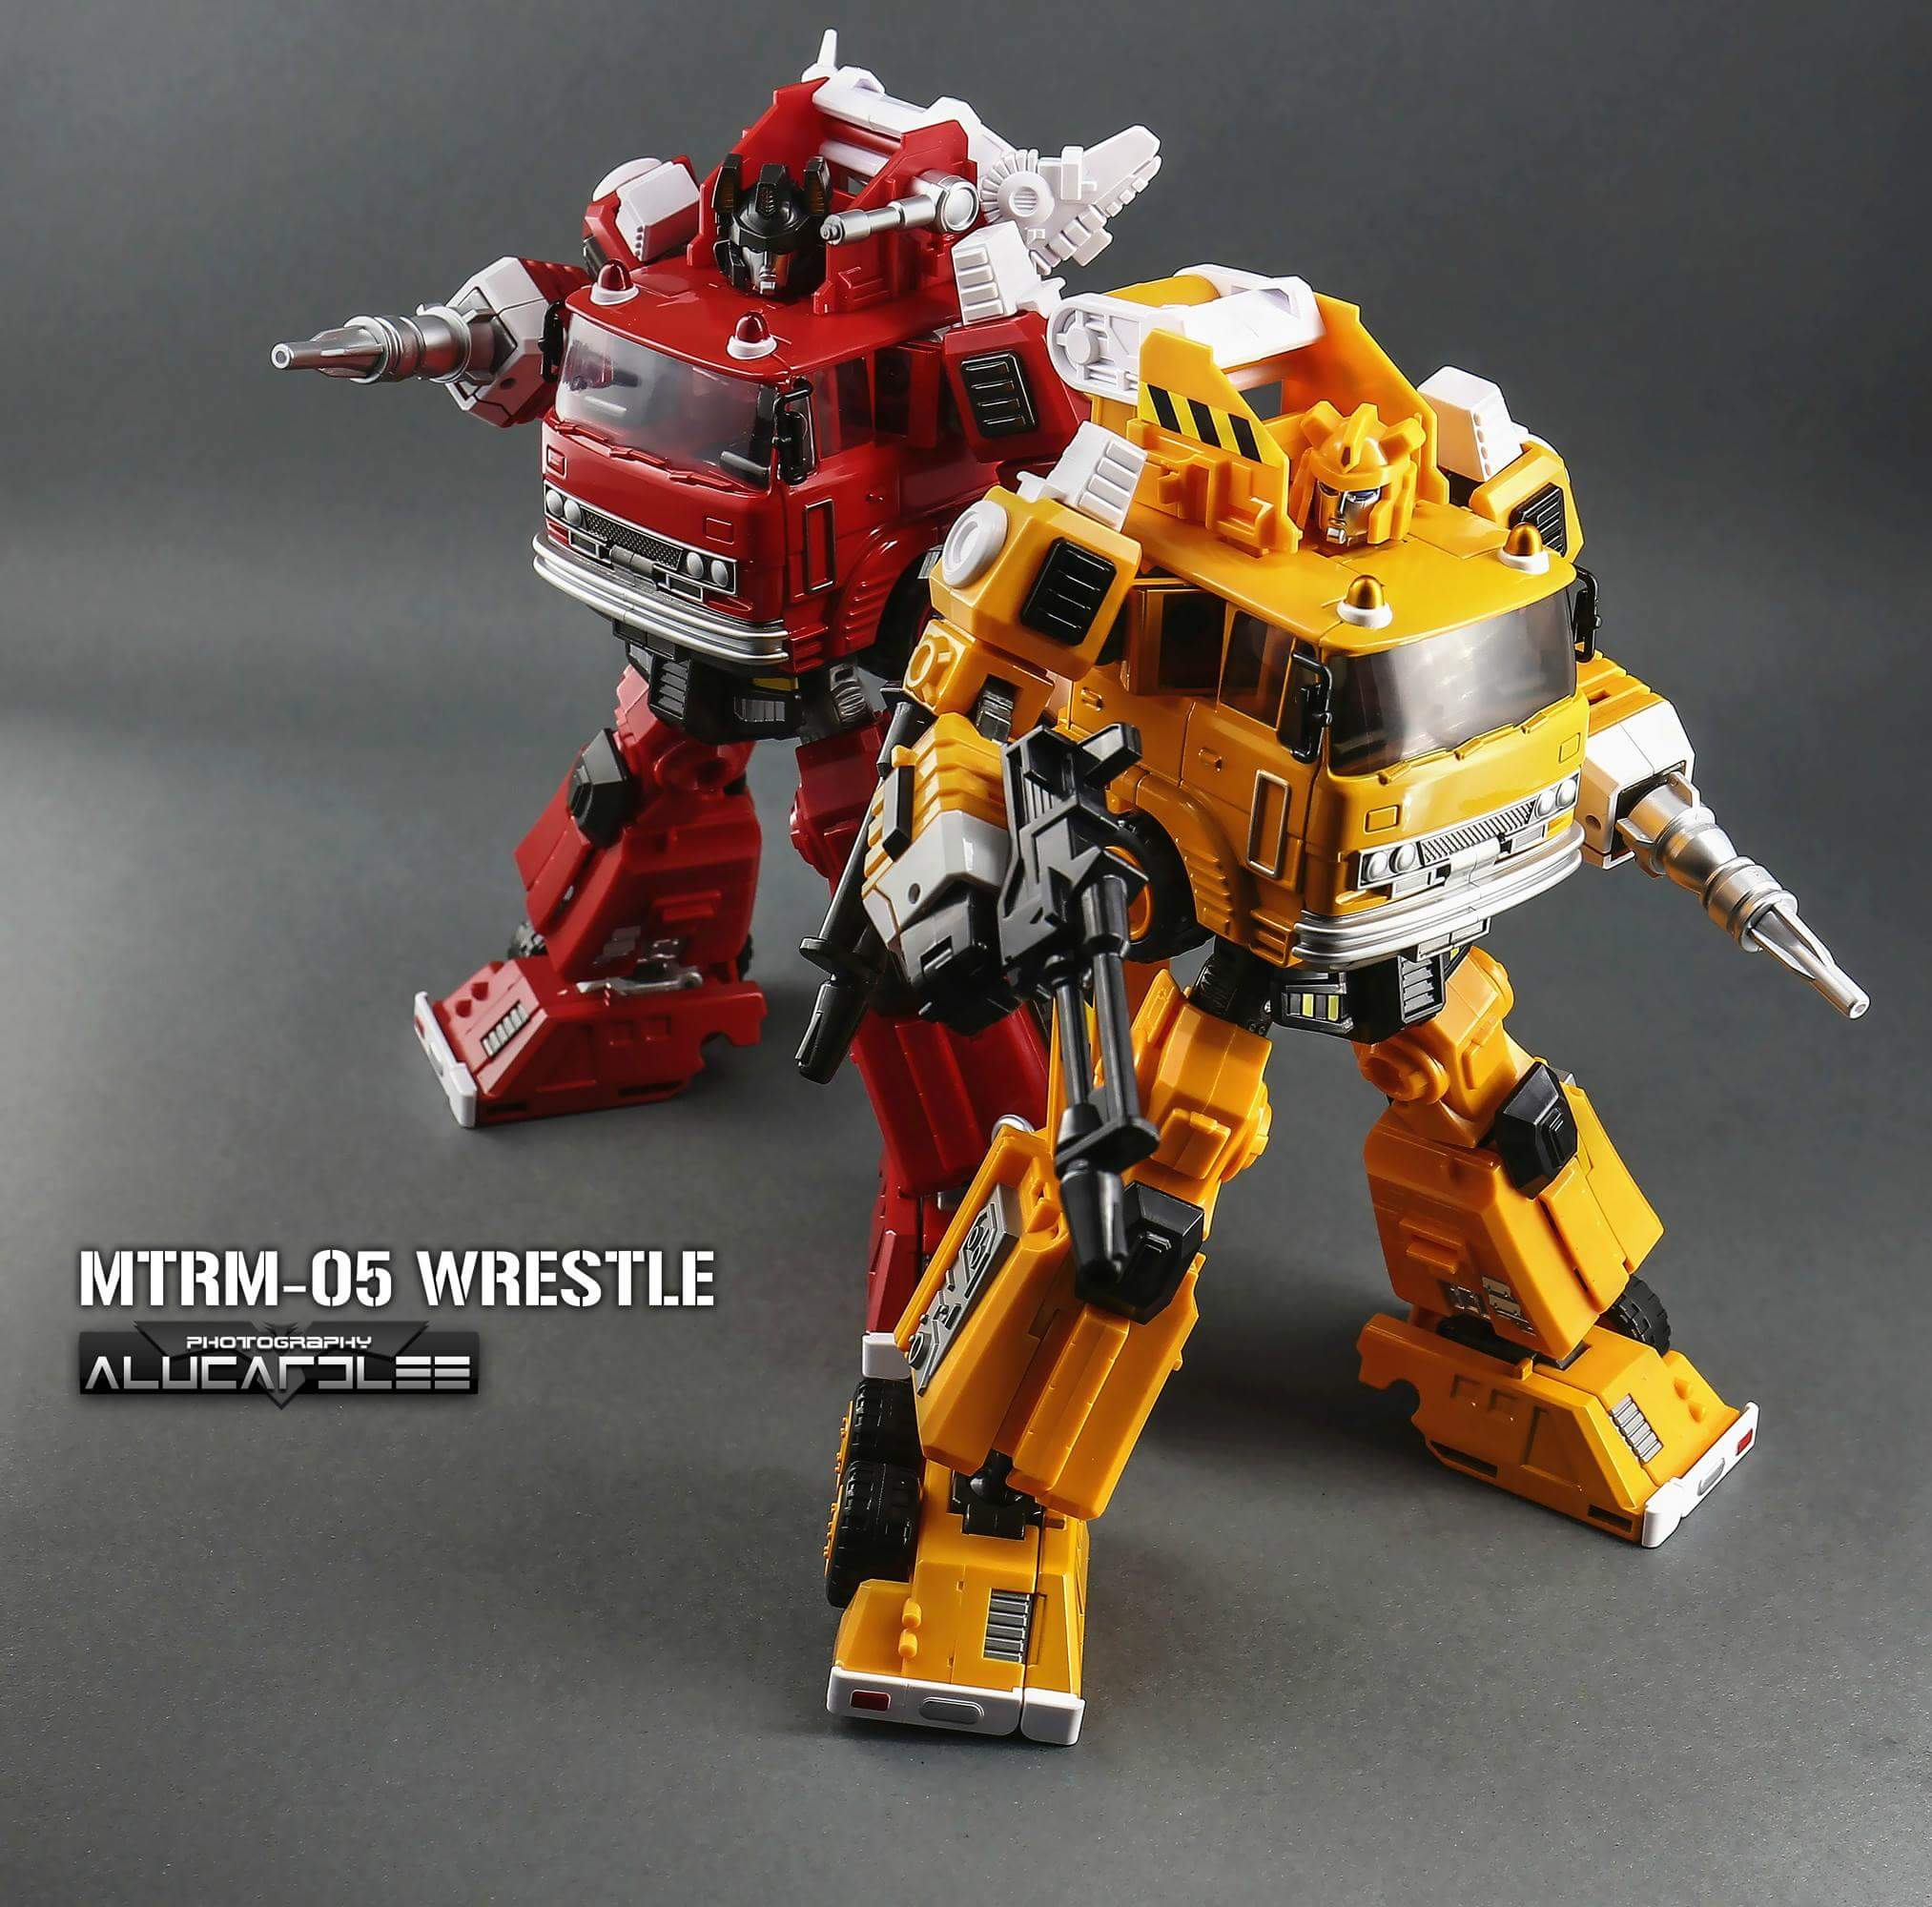 [Maketoys] Produit Tiers - MTRM-03 Hellfire (aka Inferno) et MTRM-05 Wrestle (aka Grapple/Grappin) - Page 4 JX0hSYPX